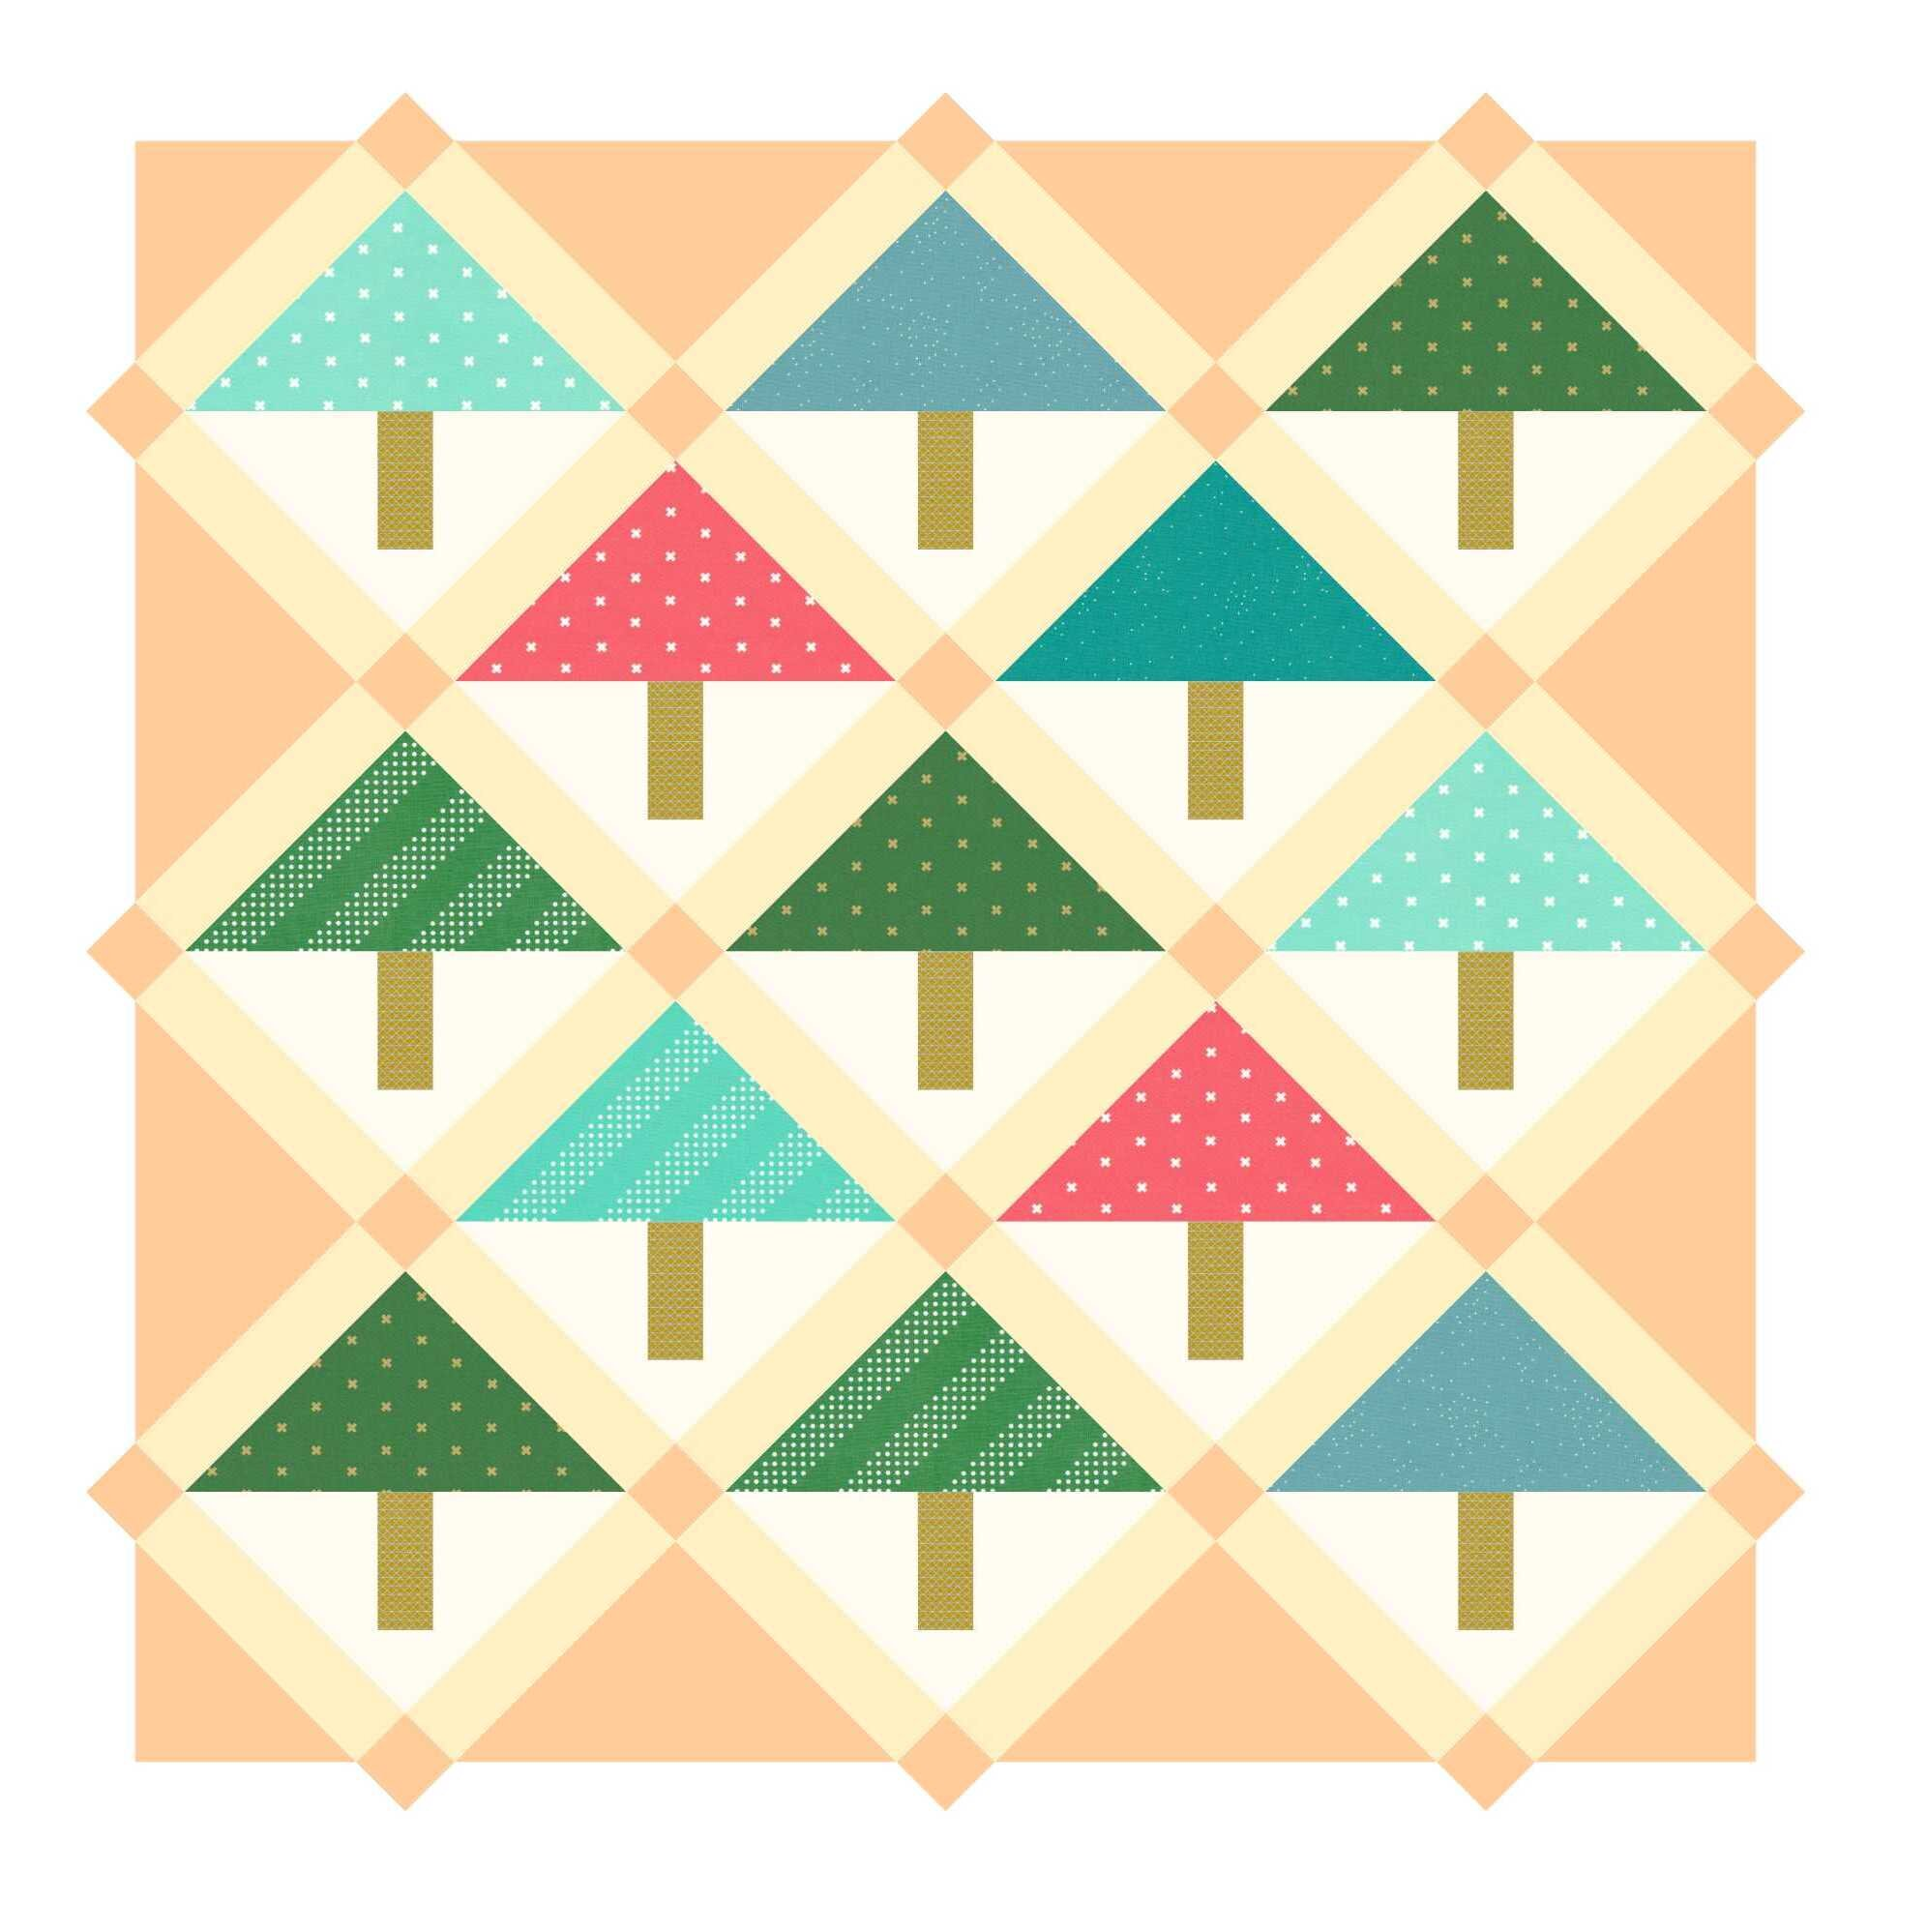 The sashing, edge triangles, and corner triangles are intentionally darker to make them easier to see.